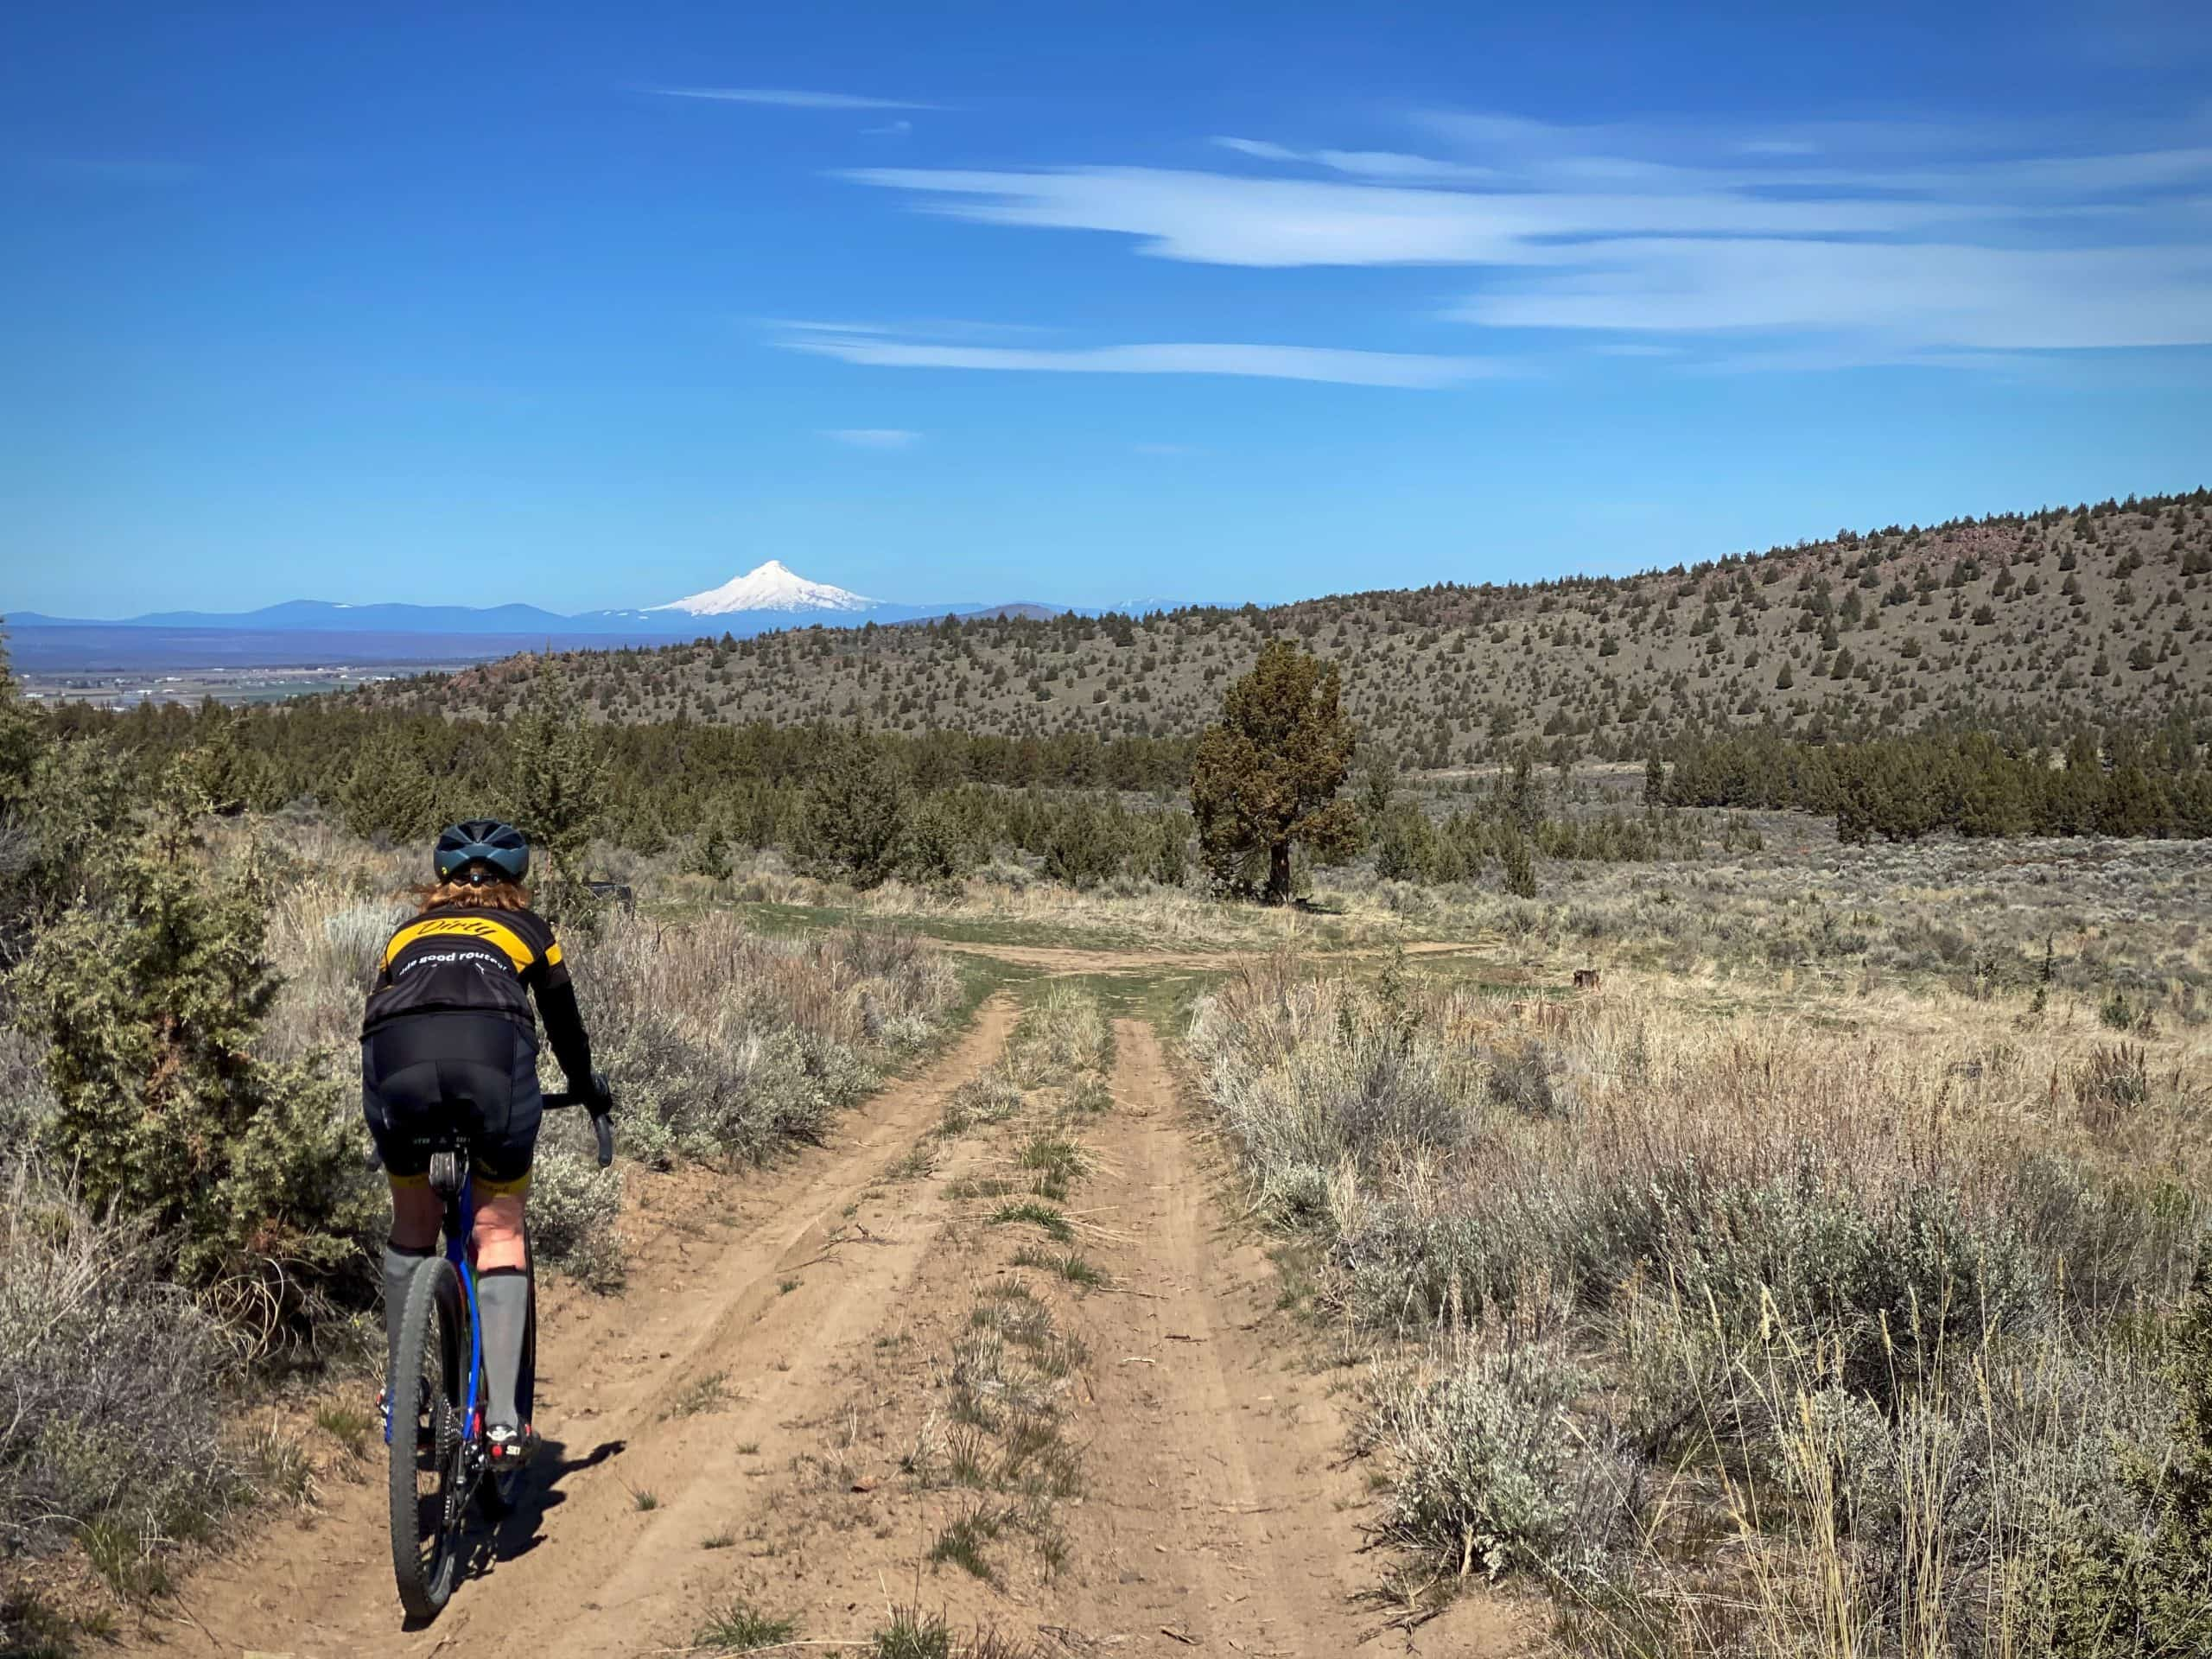 The first sector of gravel in the Crooked River National Grassland near Prineville, Oregon.